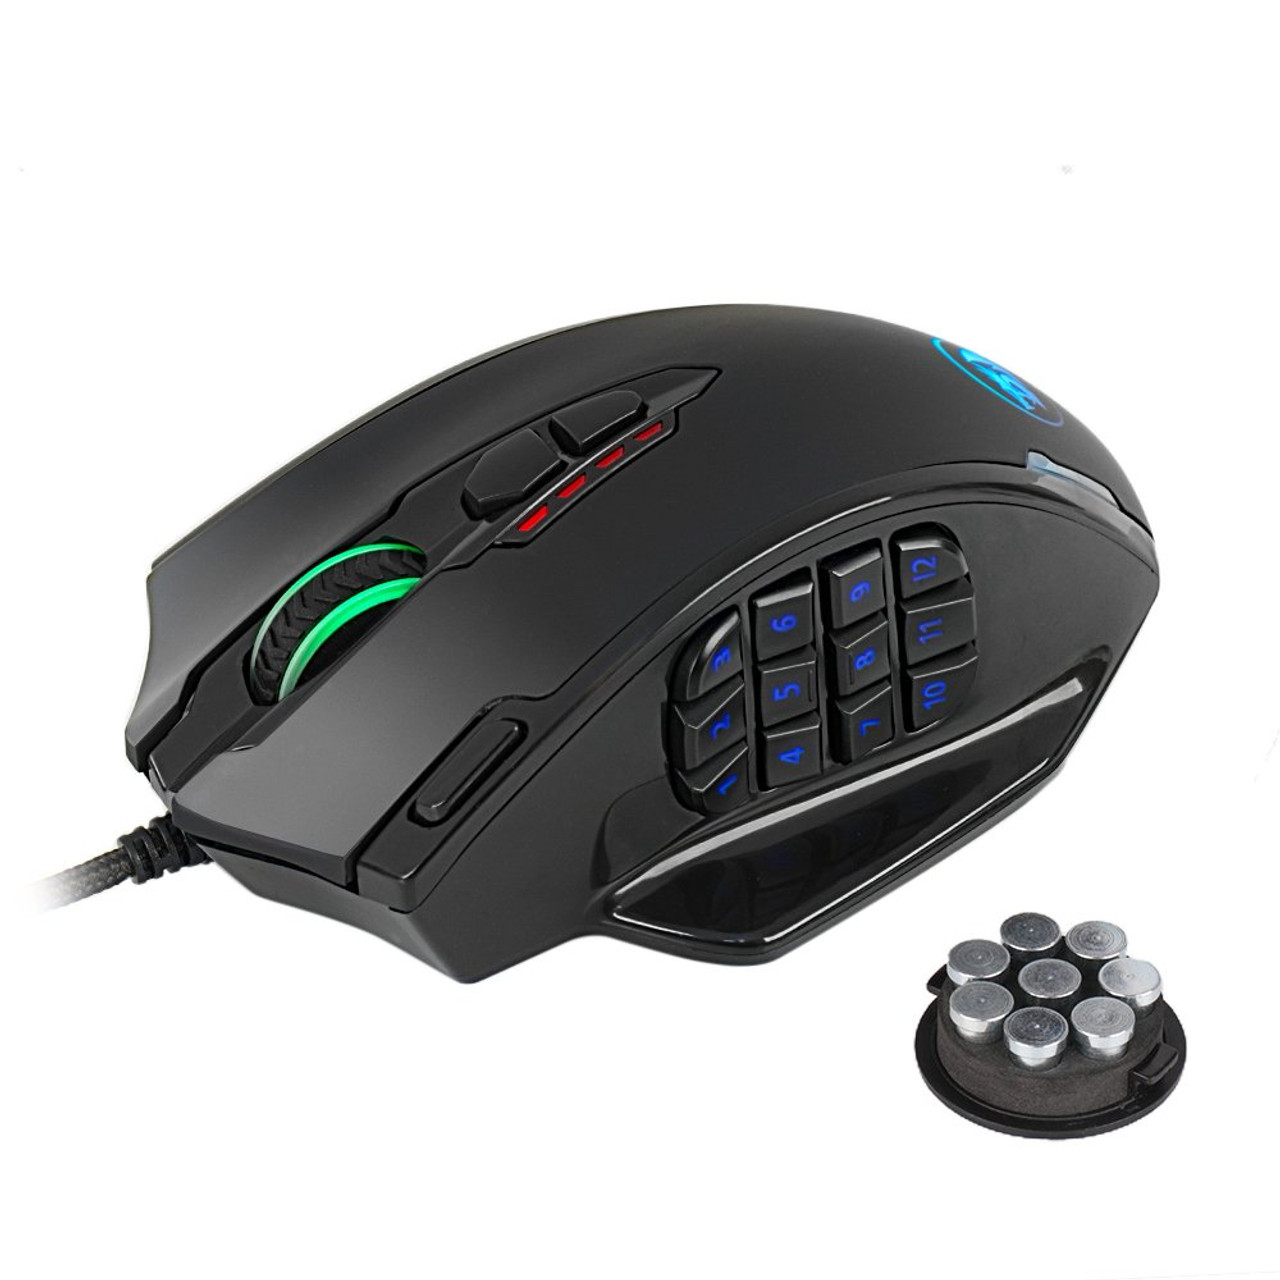 3c6fab3703d Redragon M908 IMPACT MMO Gaming Mouse up to 12,400 DPI High Precision Laser  Mouse for PC